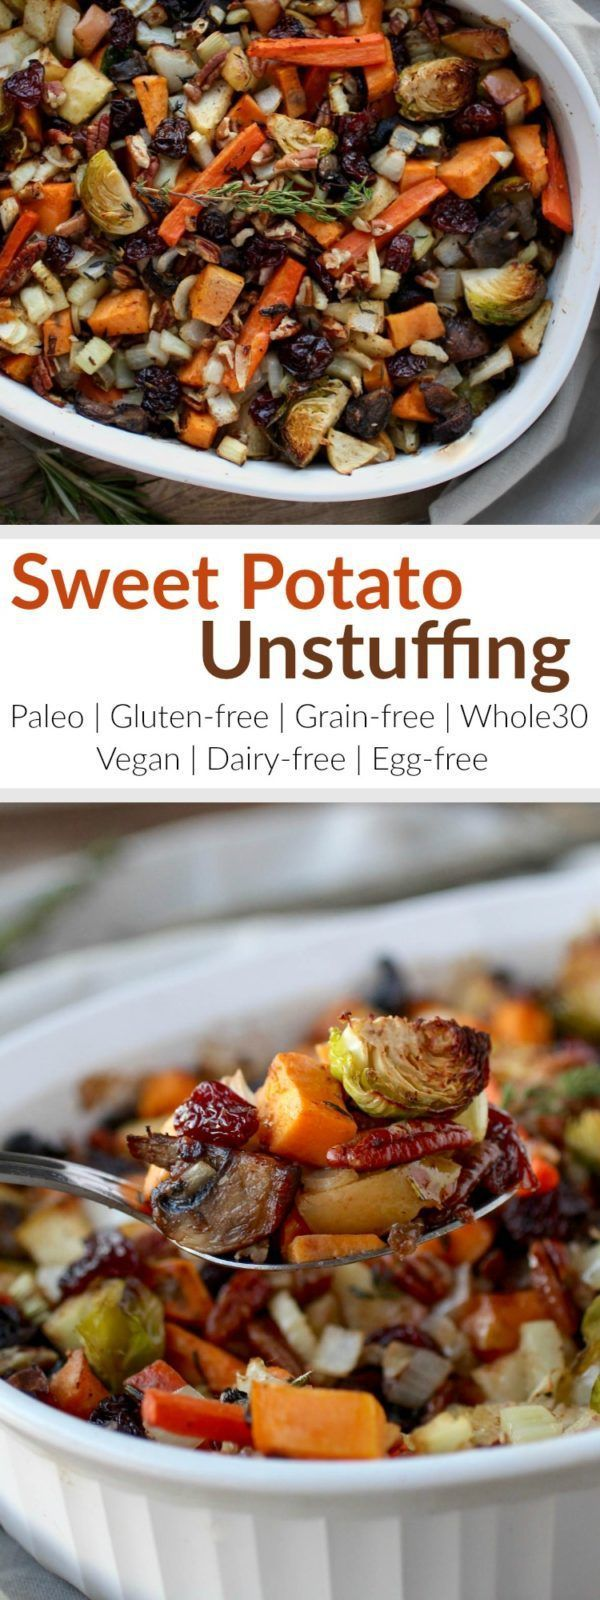 Gluten-Free Sweet Potato Unstuffing makes for a crowd-pleasing Thanksgiving side-dish or a tasty addition to your weeknight menu. It has the flavors of stuffing but without the bread. It's loaded with a variety of veggies and studded with the perfect amount of dried cherries, apples, pecans, and fresh herbs. The ingredients come together to create quite a delicious and healthy stuffing side-dish | Whole30 | Paleo | Vegan | http://therealfoodrds.com